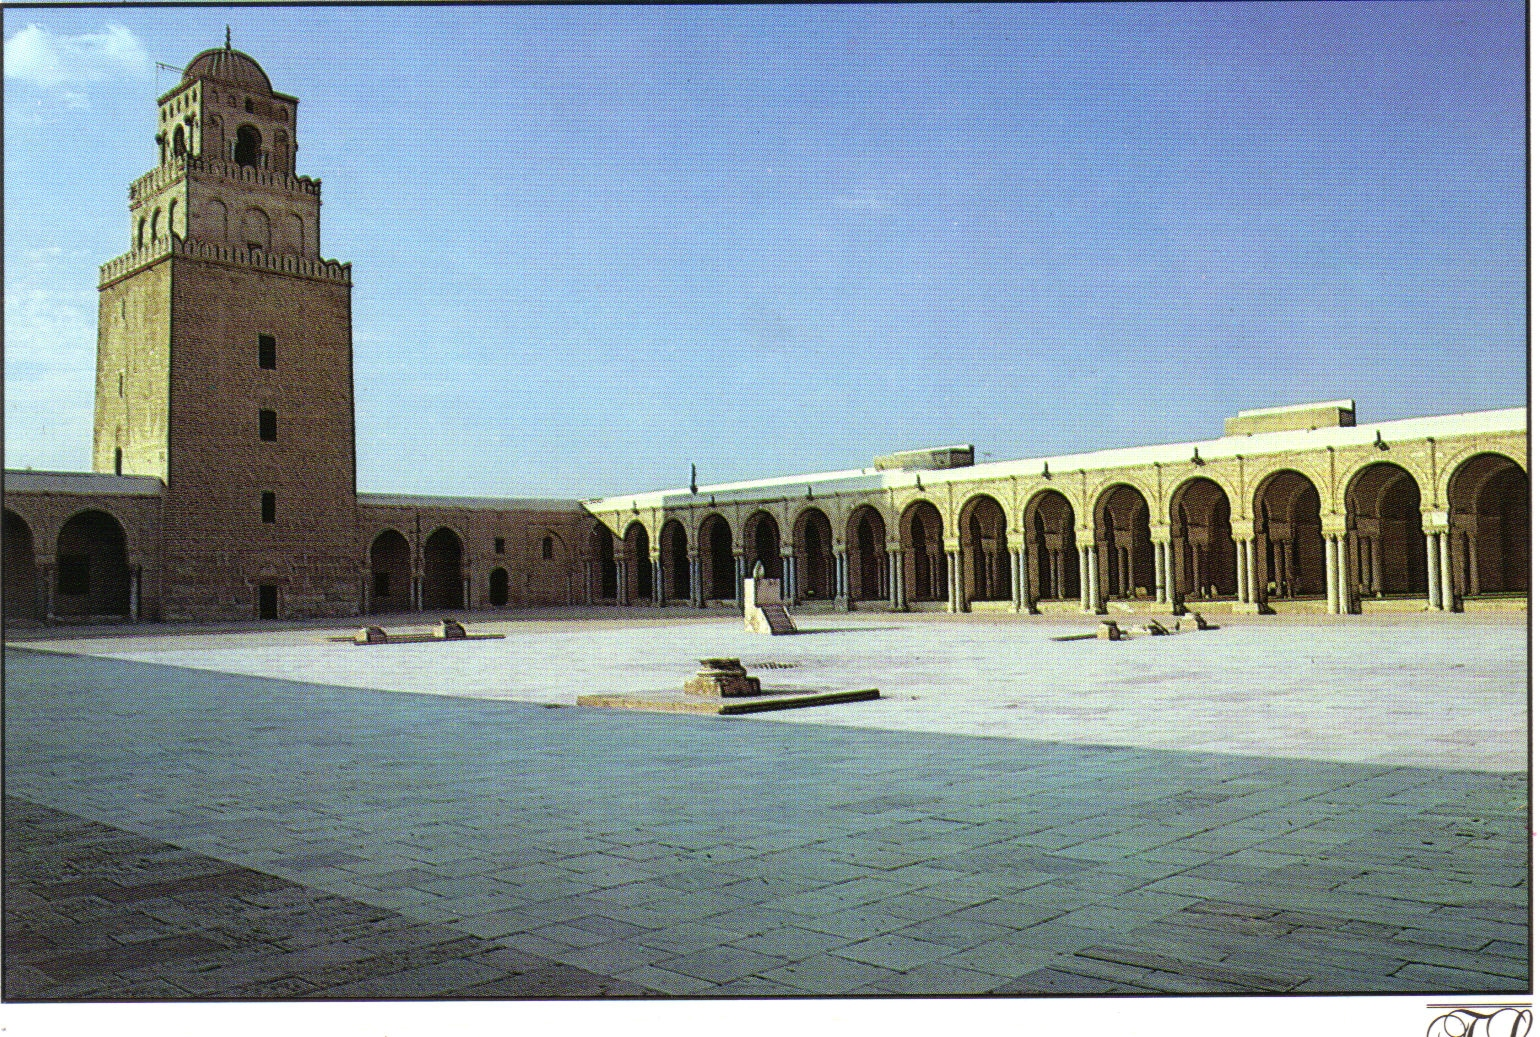 Kairouan Mosque Fes The Great Mosque of Kairouan